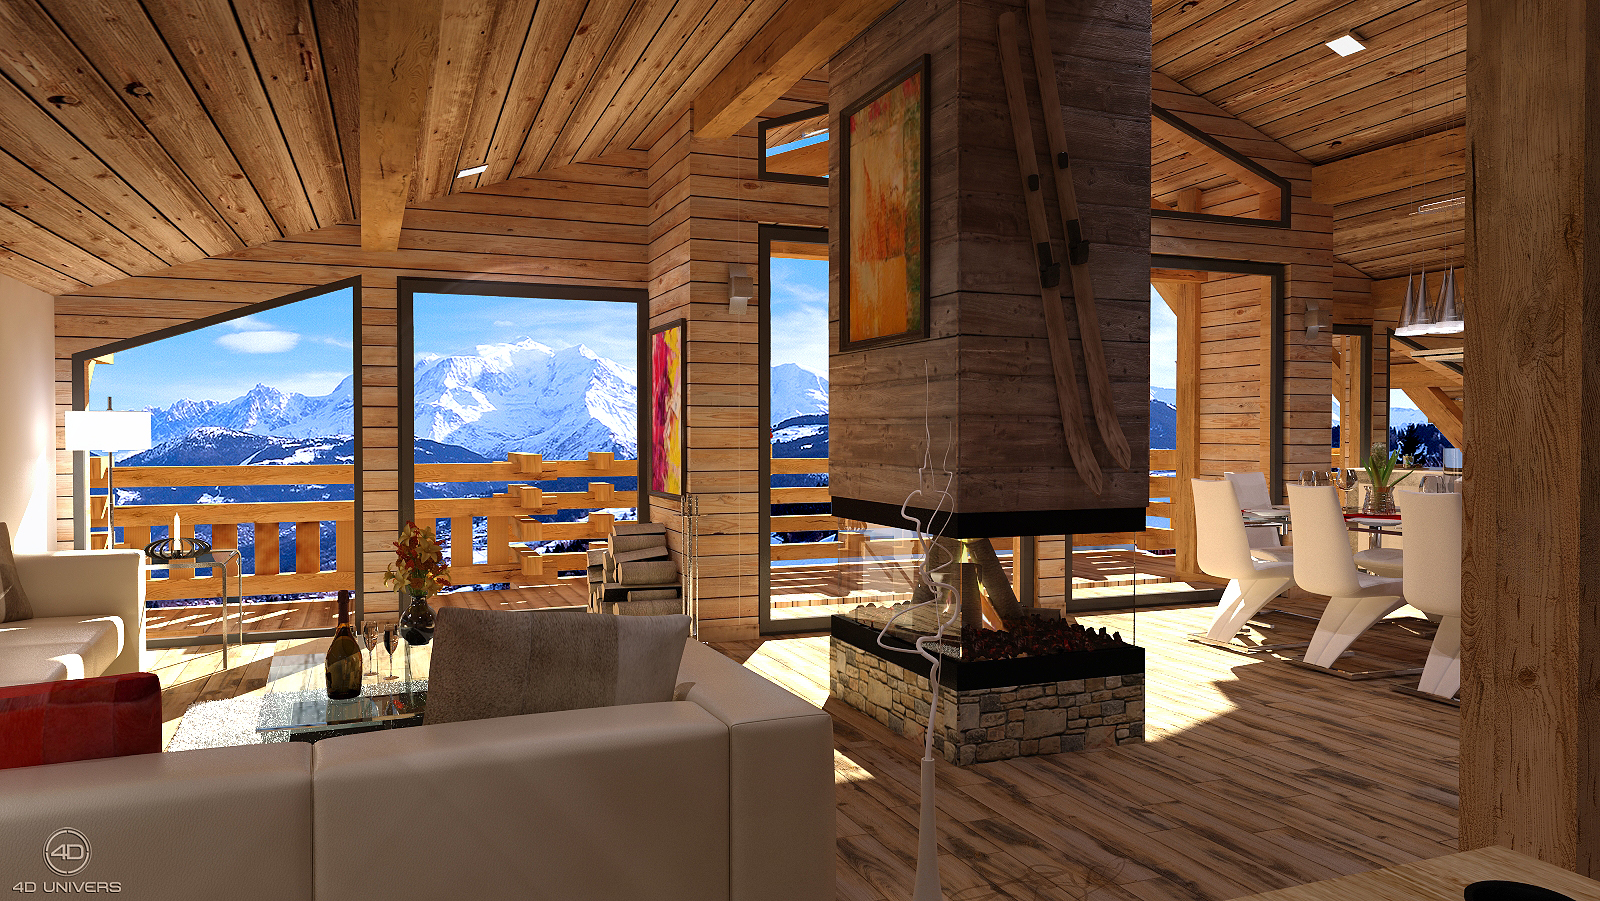 Chalet meg ve 4d univers studio animation 3d for Decoration de interieur